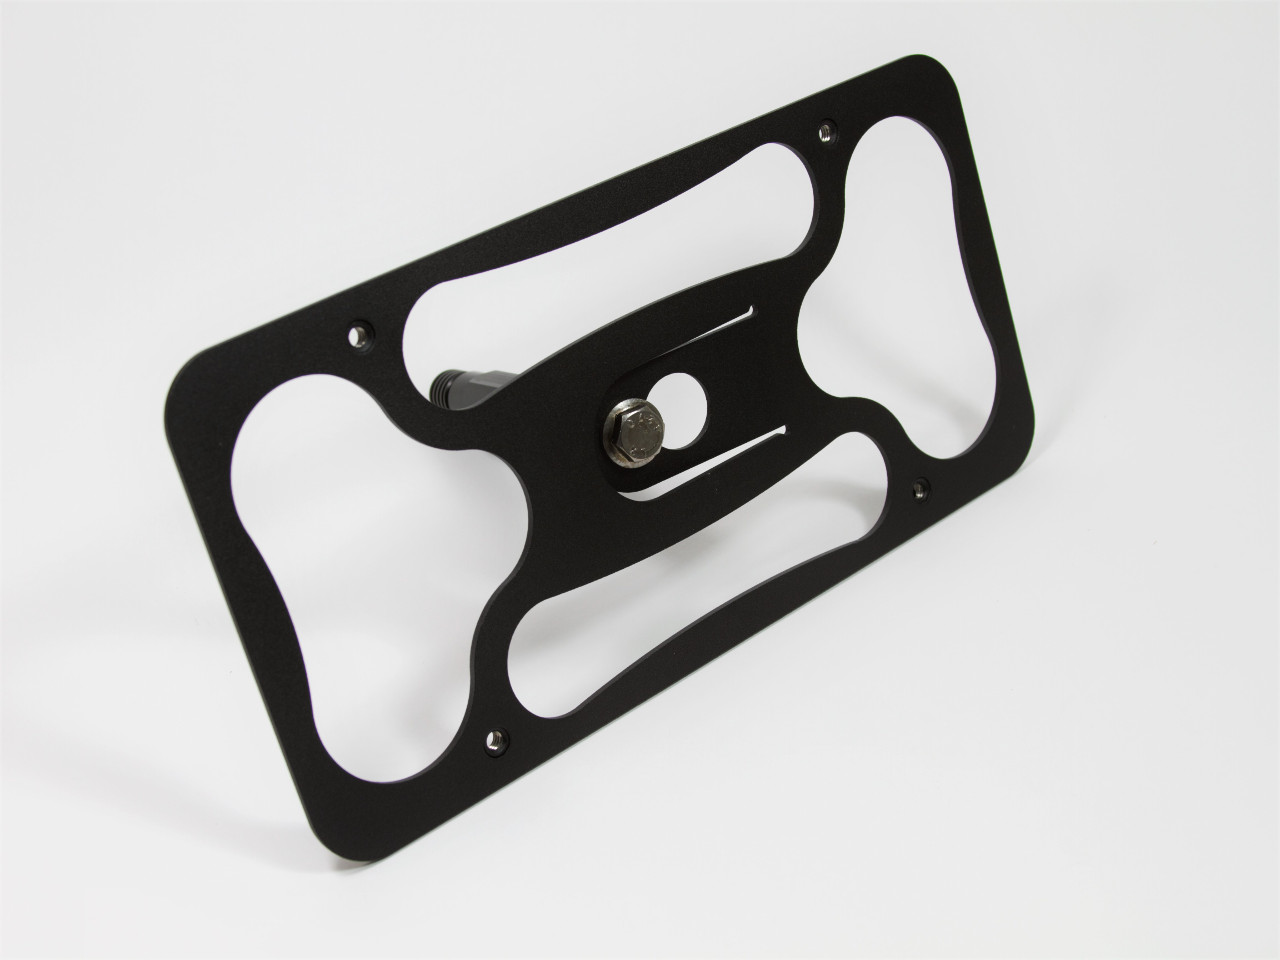 Front view of The Platypus License Plate Mount for 2006-2012 BMW 335i